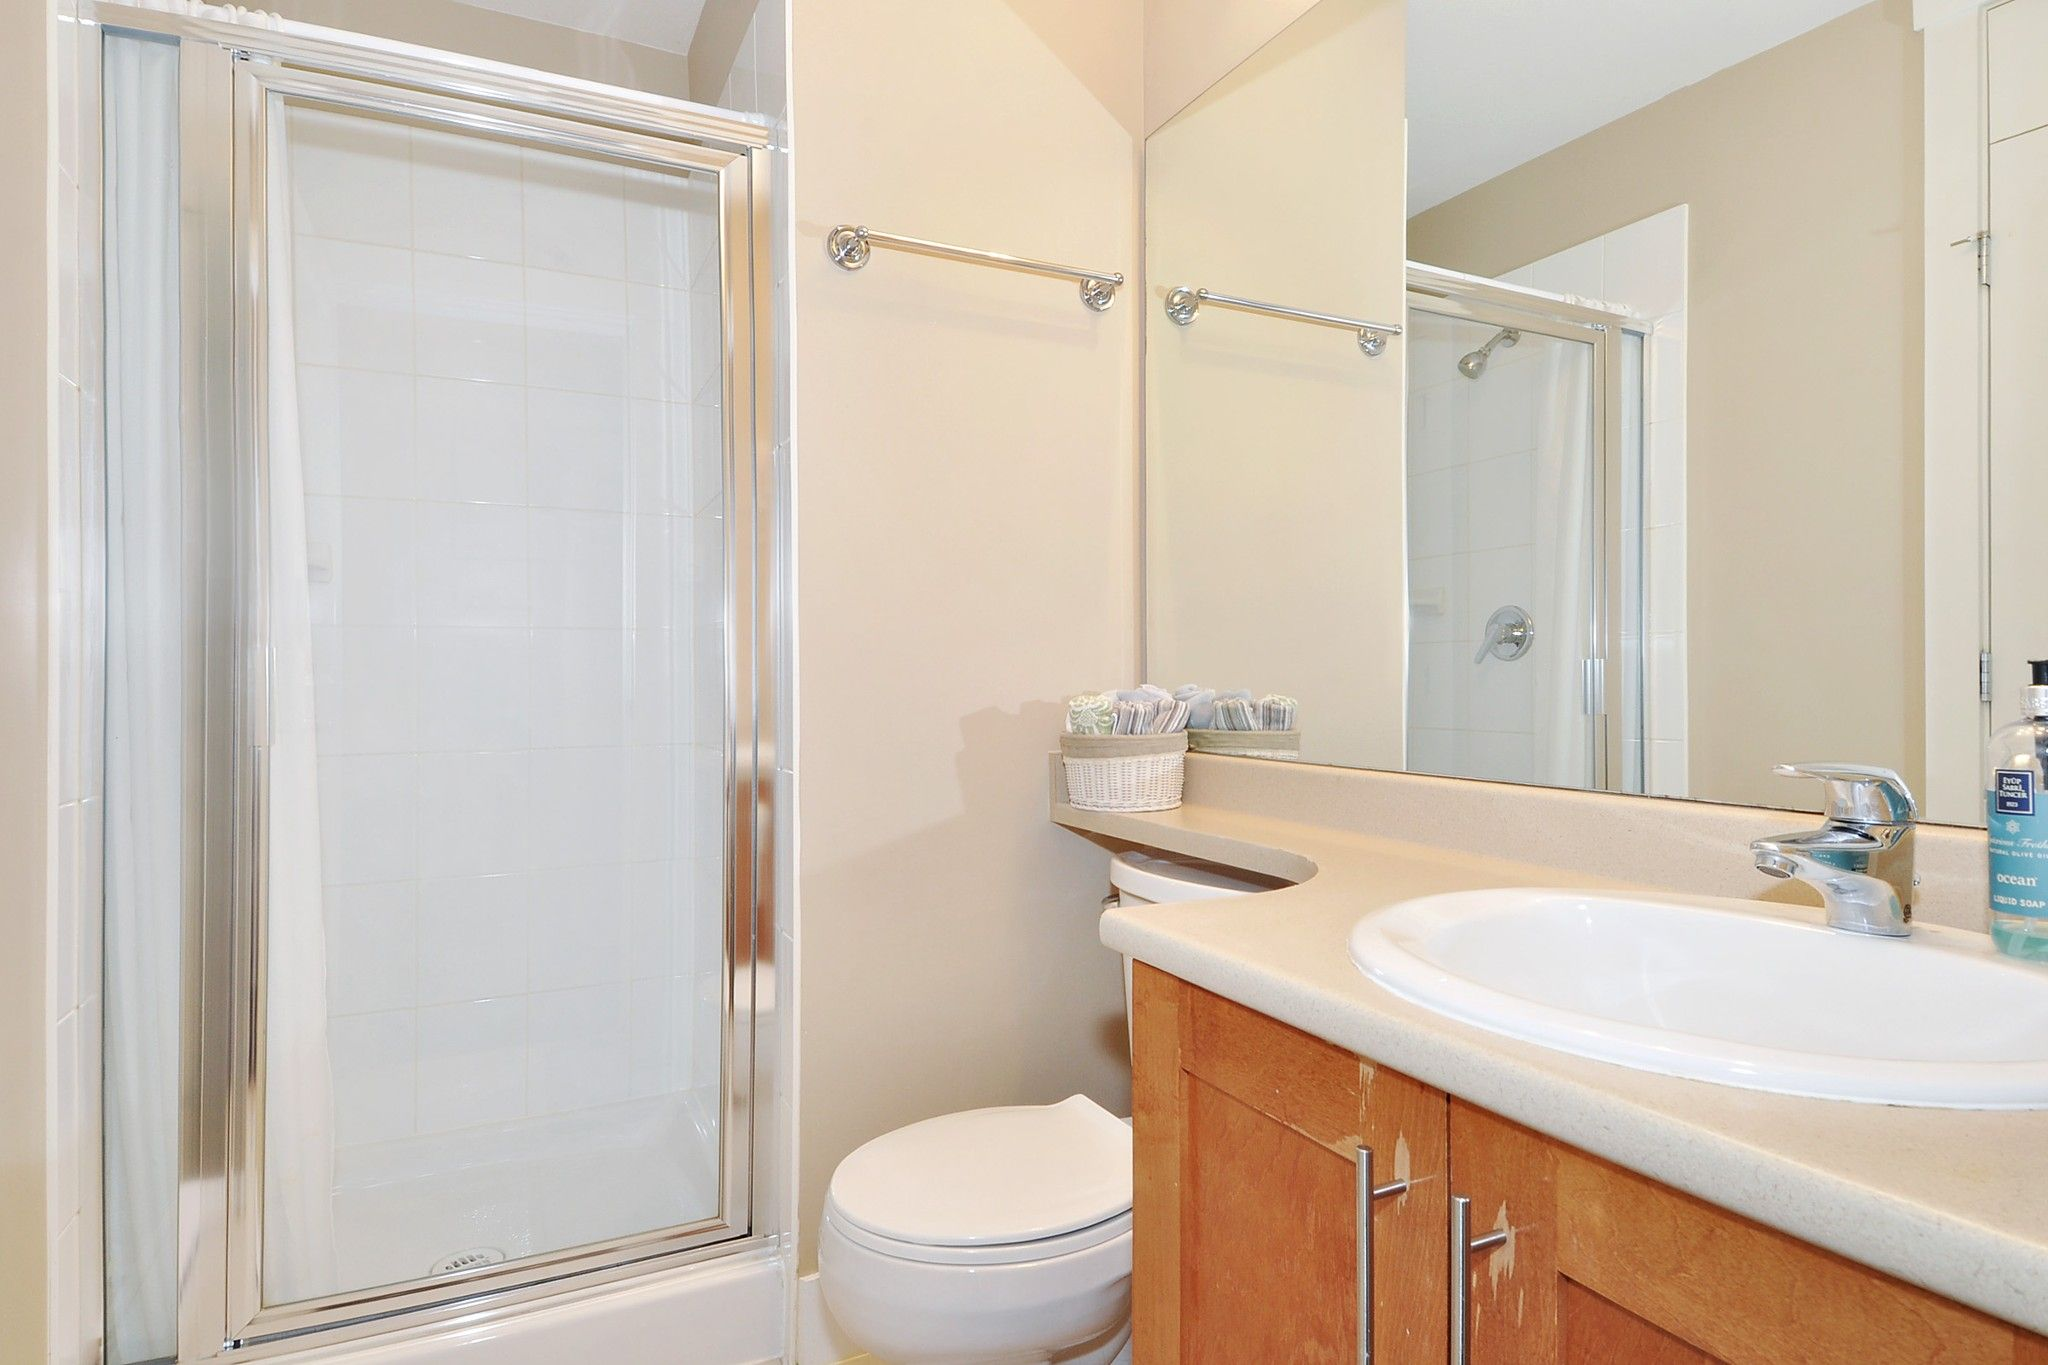 """Photo 11: Photos: 222 2083 W 33RD Avenue in Vancouver: Quilchena Condo for sale in """"DEVONSHIRE HOUSE"""" (Vancouver West)  : MLS®# R2341234"""